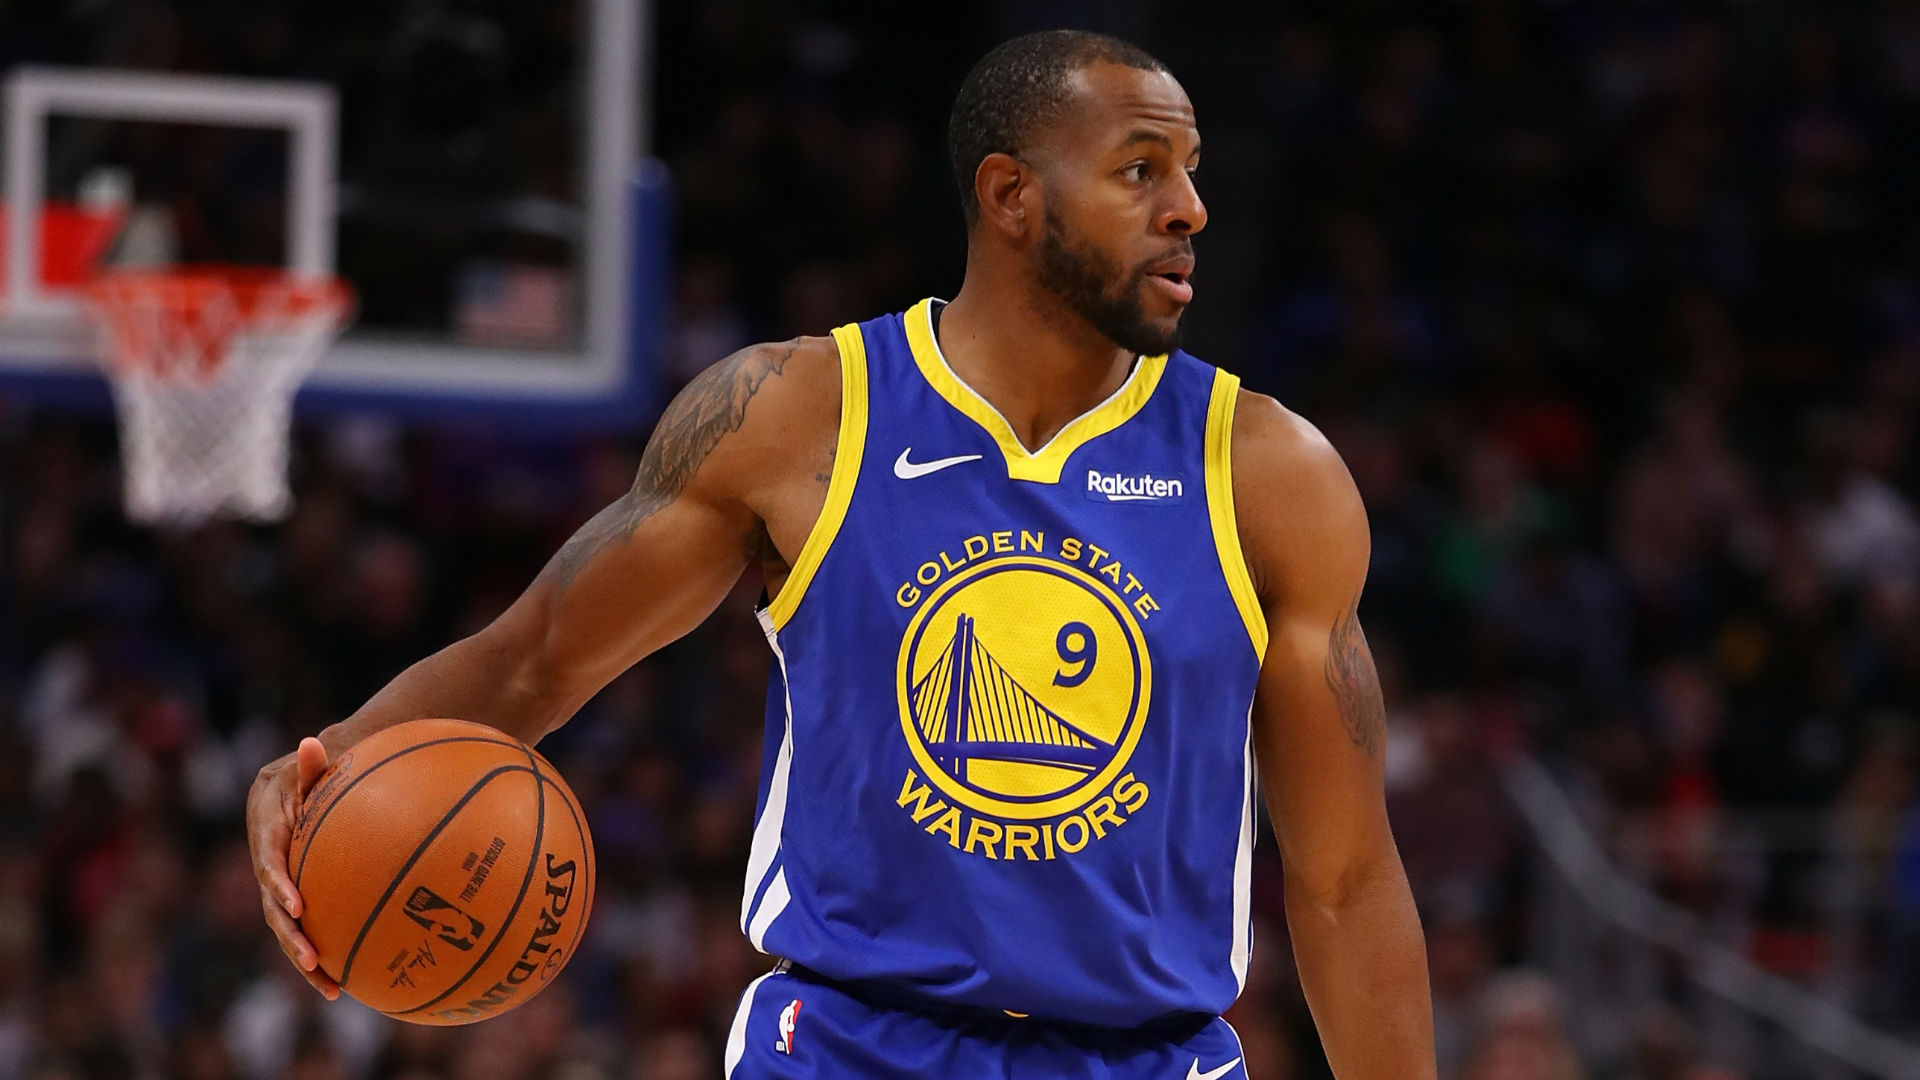 Grizzlies refuse to buy out Andre Iguodala's contract, want him at camp, report says